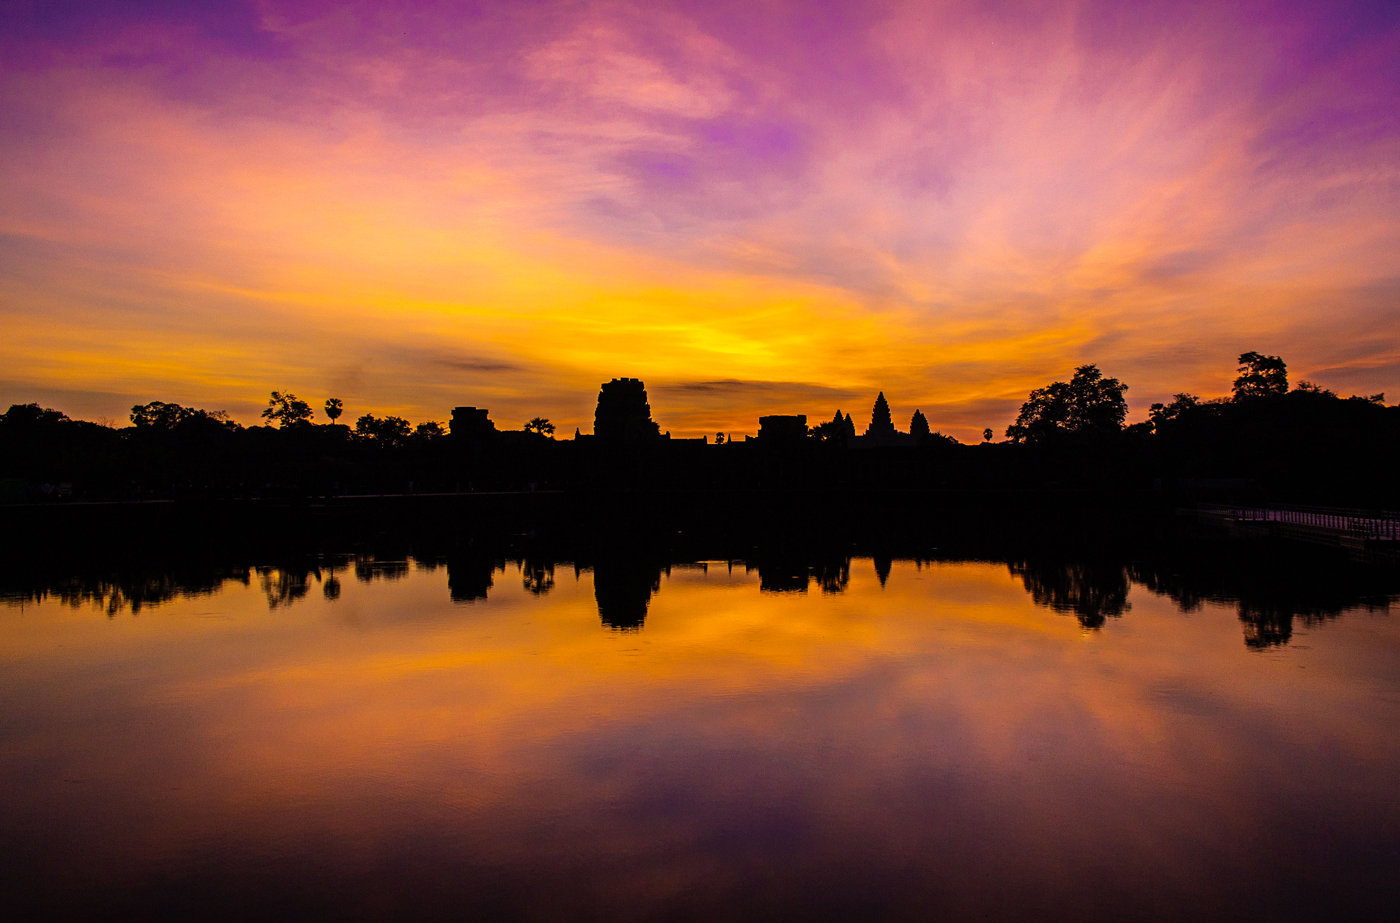 Amanecer-Angkor-Wat -  Claudio Ramírez fotógrafo de naturaleza y paisajes, outdoor and nature photographer